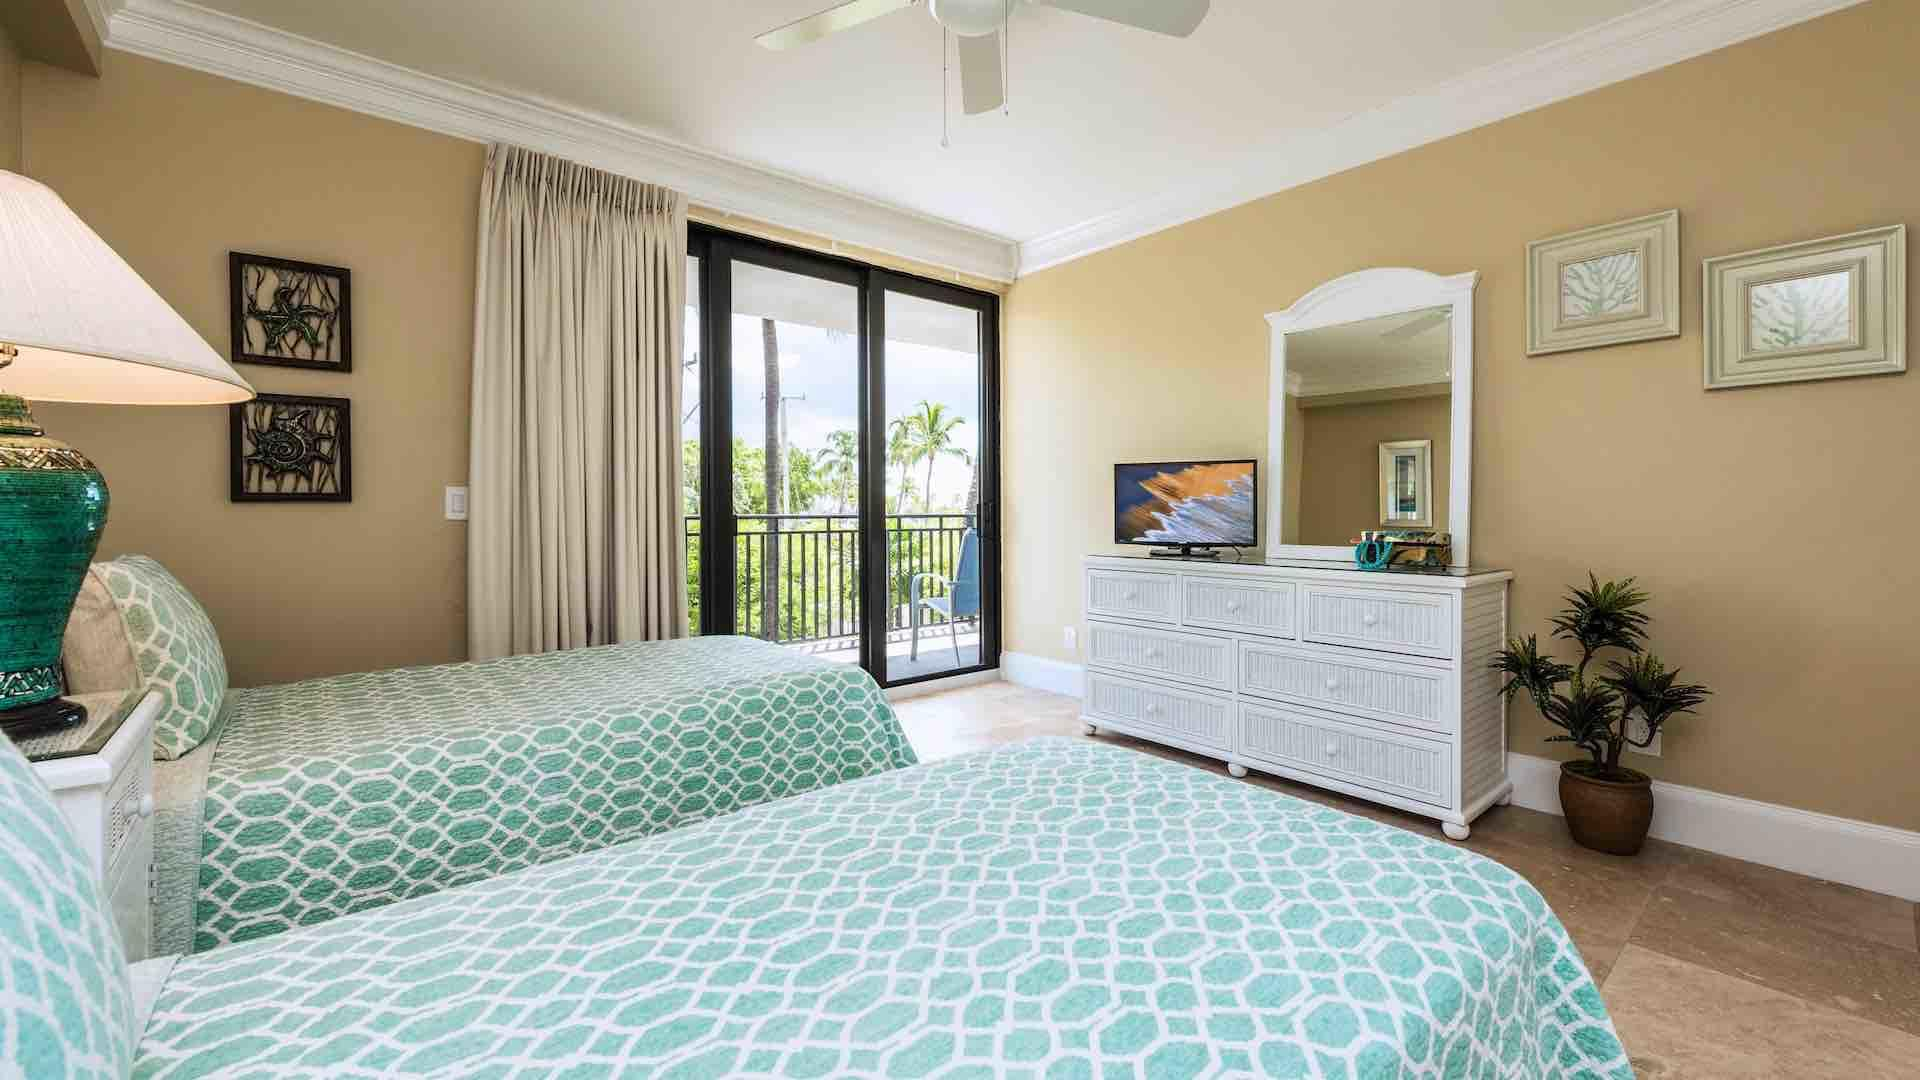 The third bedroom also has a flat screen TV and balcony access...